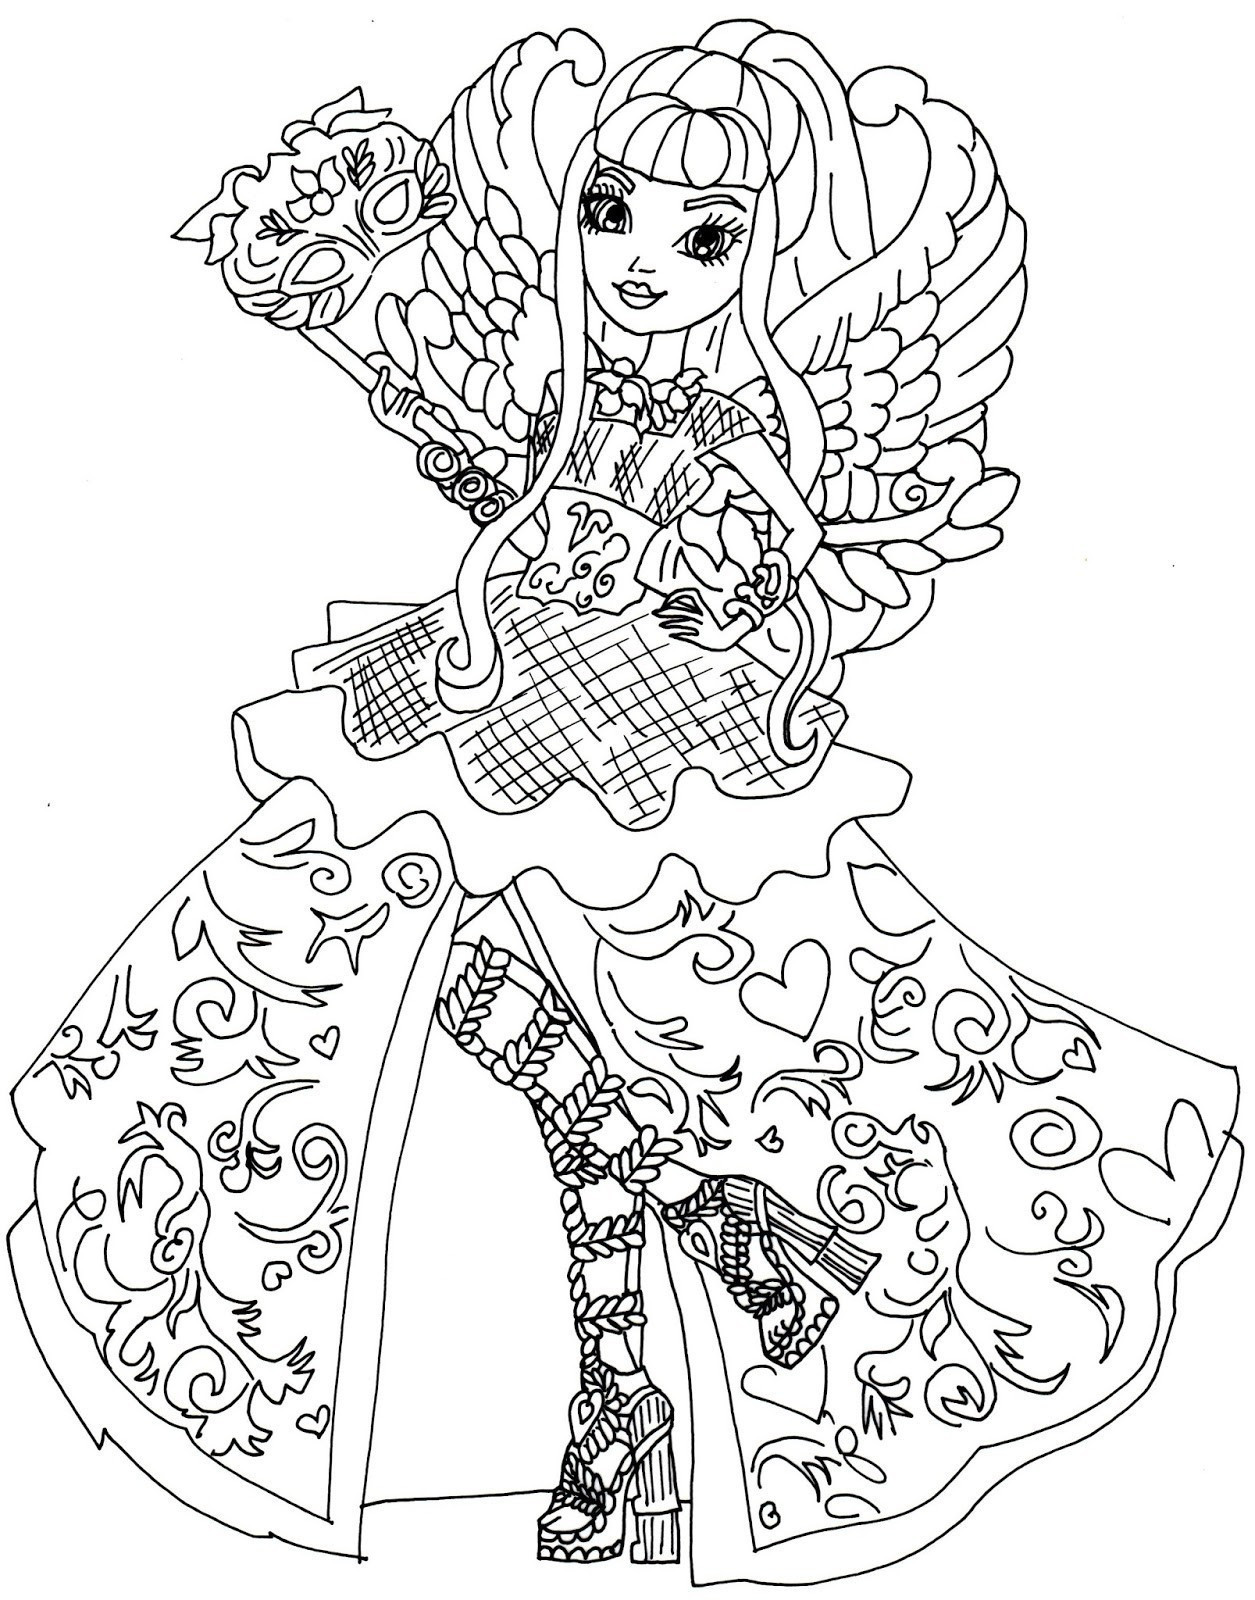 Monster High Ausmalbilder Inspirierend Monster High Ausmalbilder Lagoona Blue Frisch Coloring Pages Monster Bild